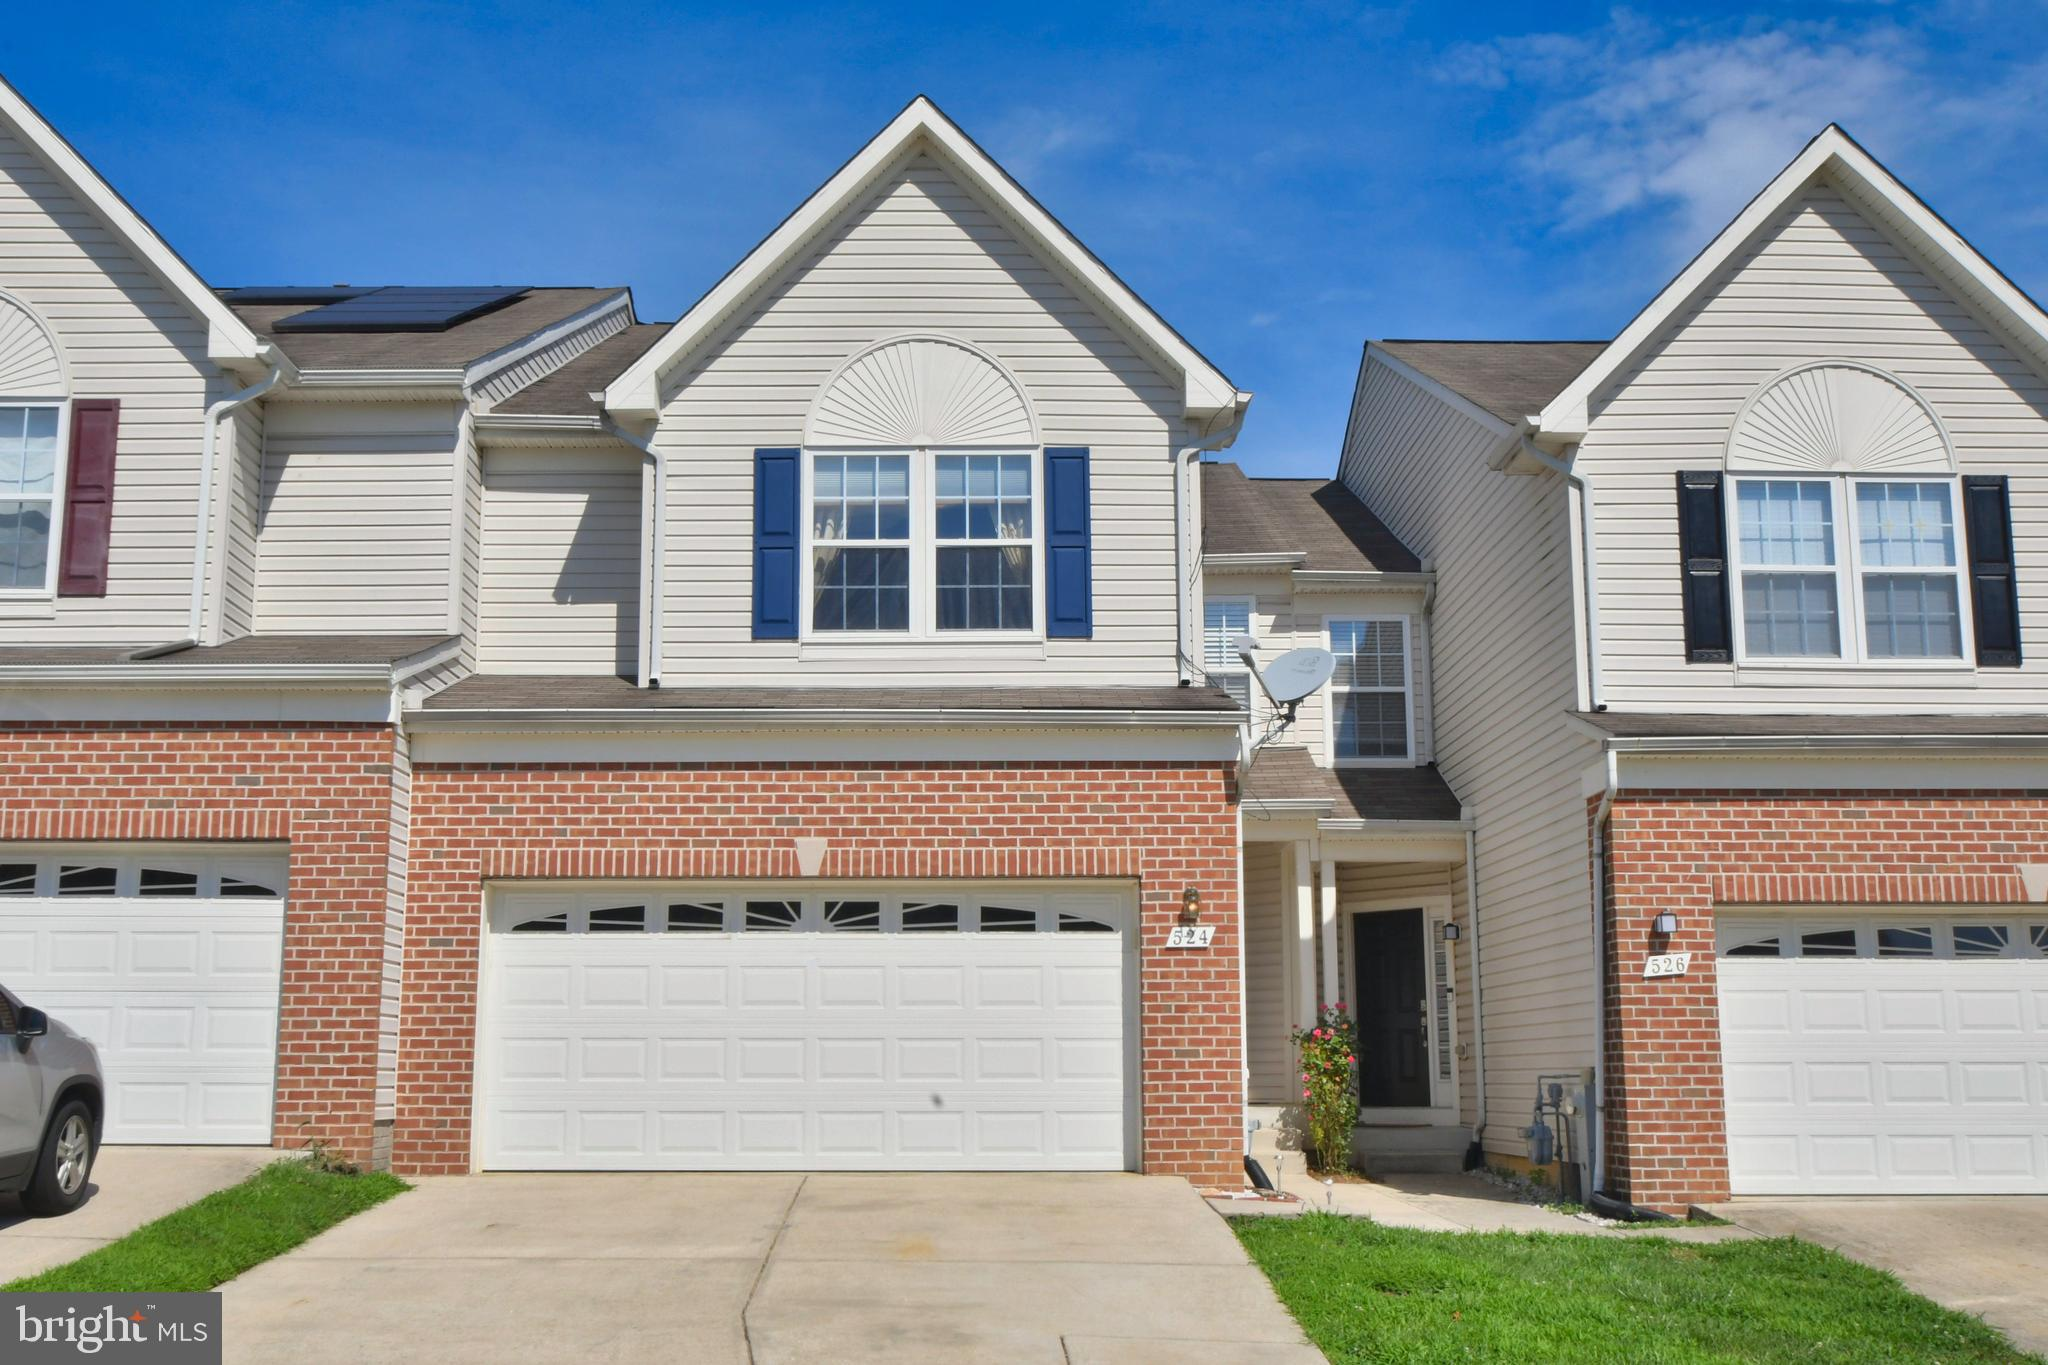 Beautiful well cared for townhouse 4 bedroom 3.5 bath, Hardwood on main level, kitchen with upgraded